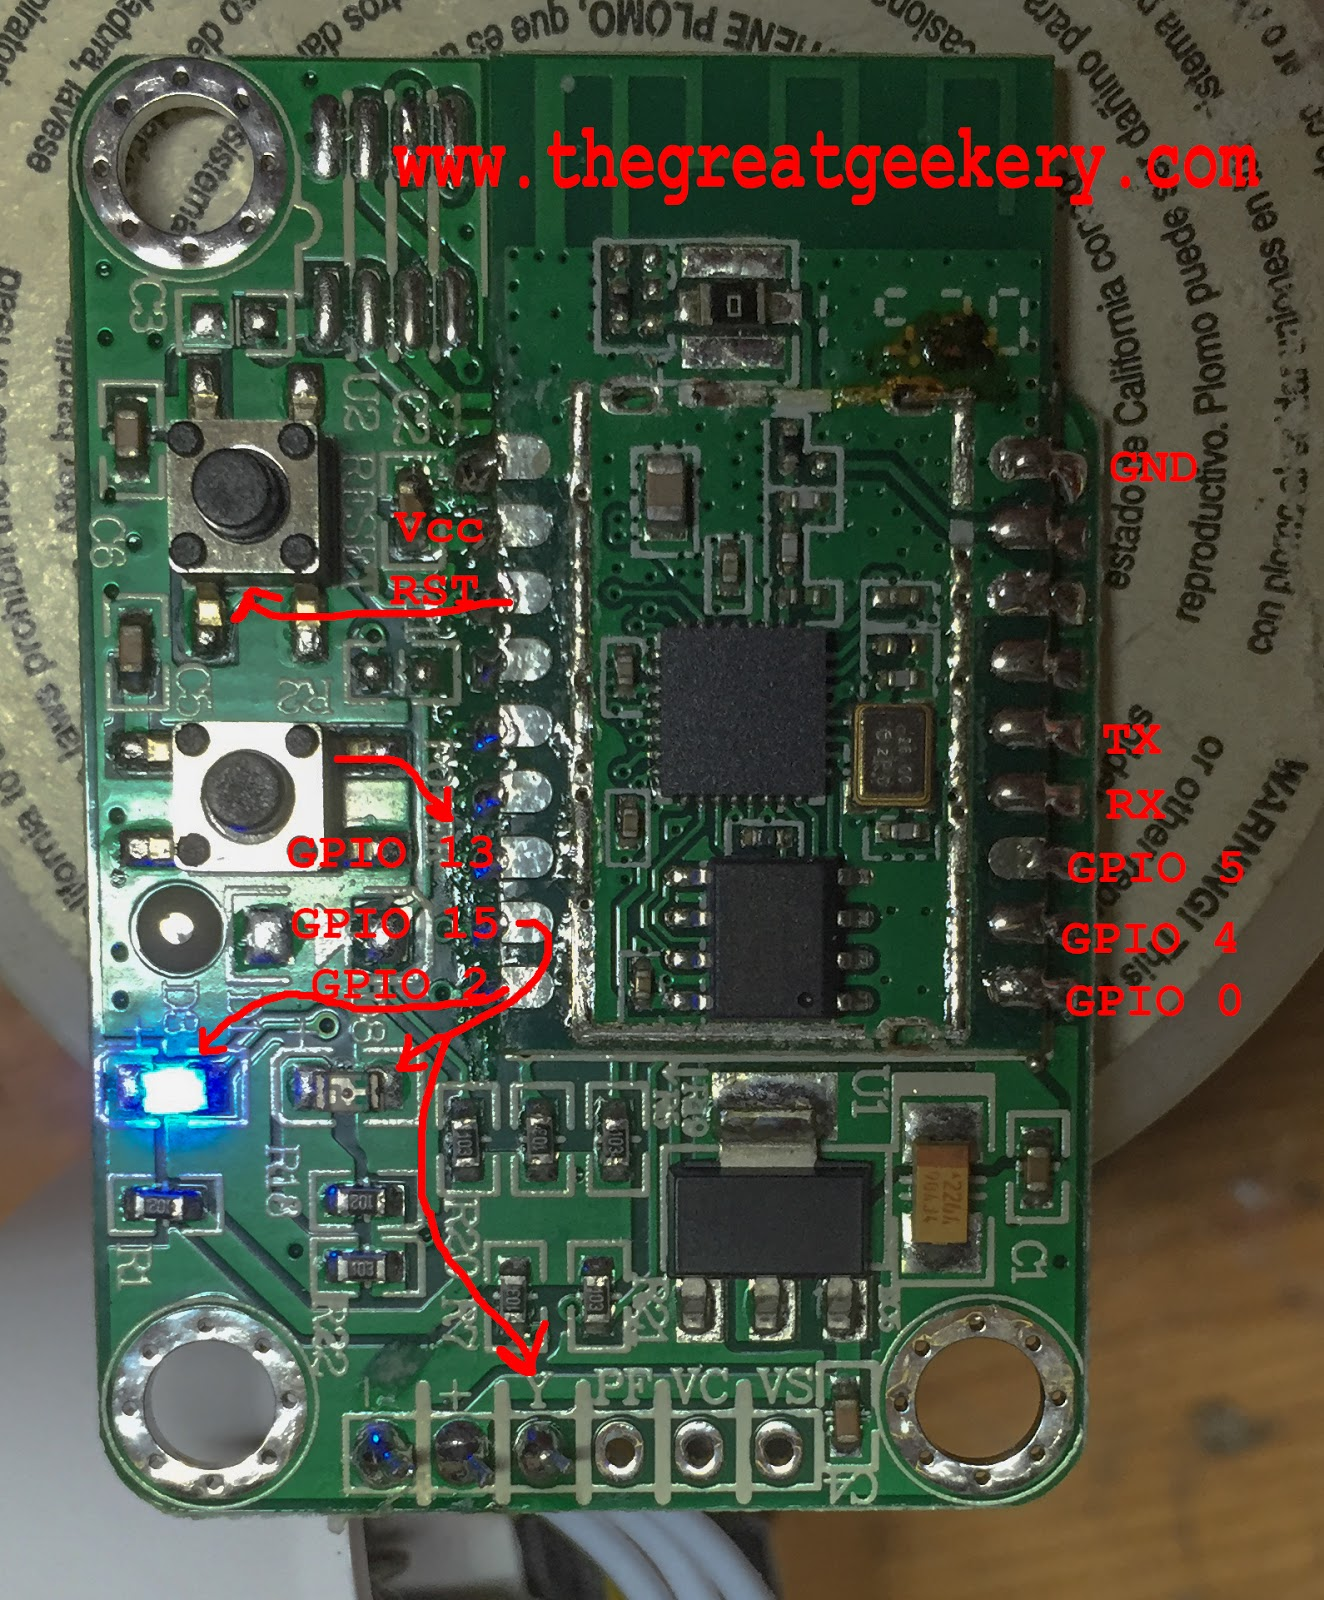 The Great Geekery Ecoplug Wifi Switch Hacking Bmw 20 Pin Connector Pinout On Ide To Usb Cable Wiring Diagram An Error Occurred